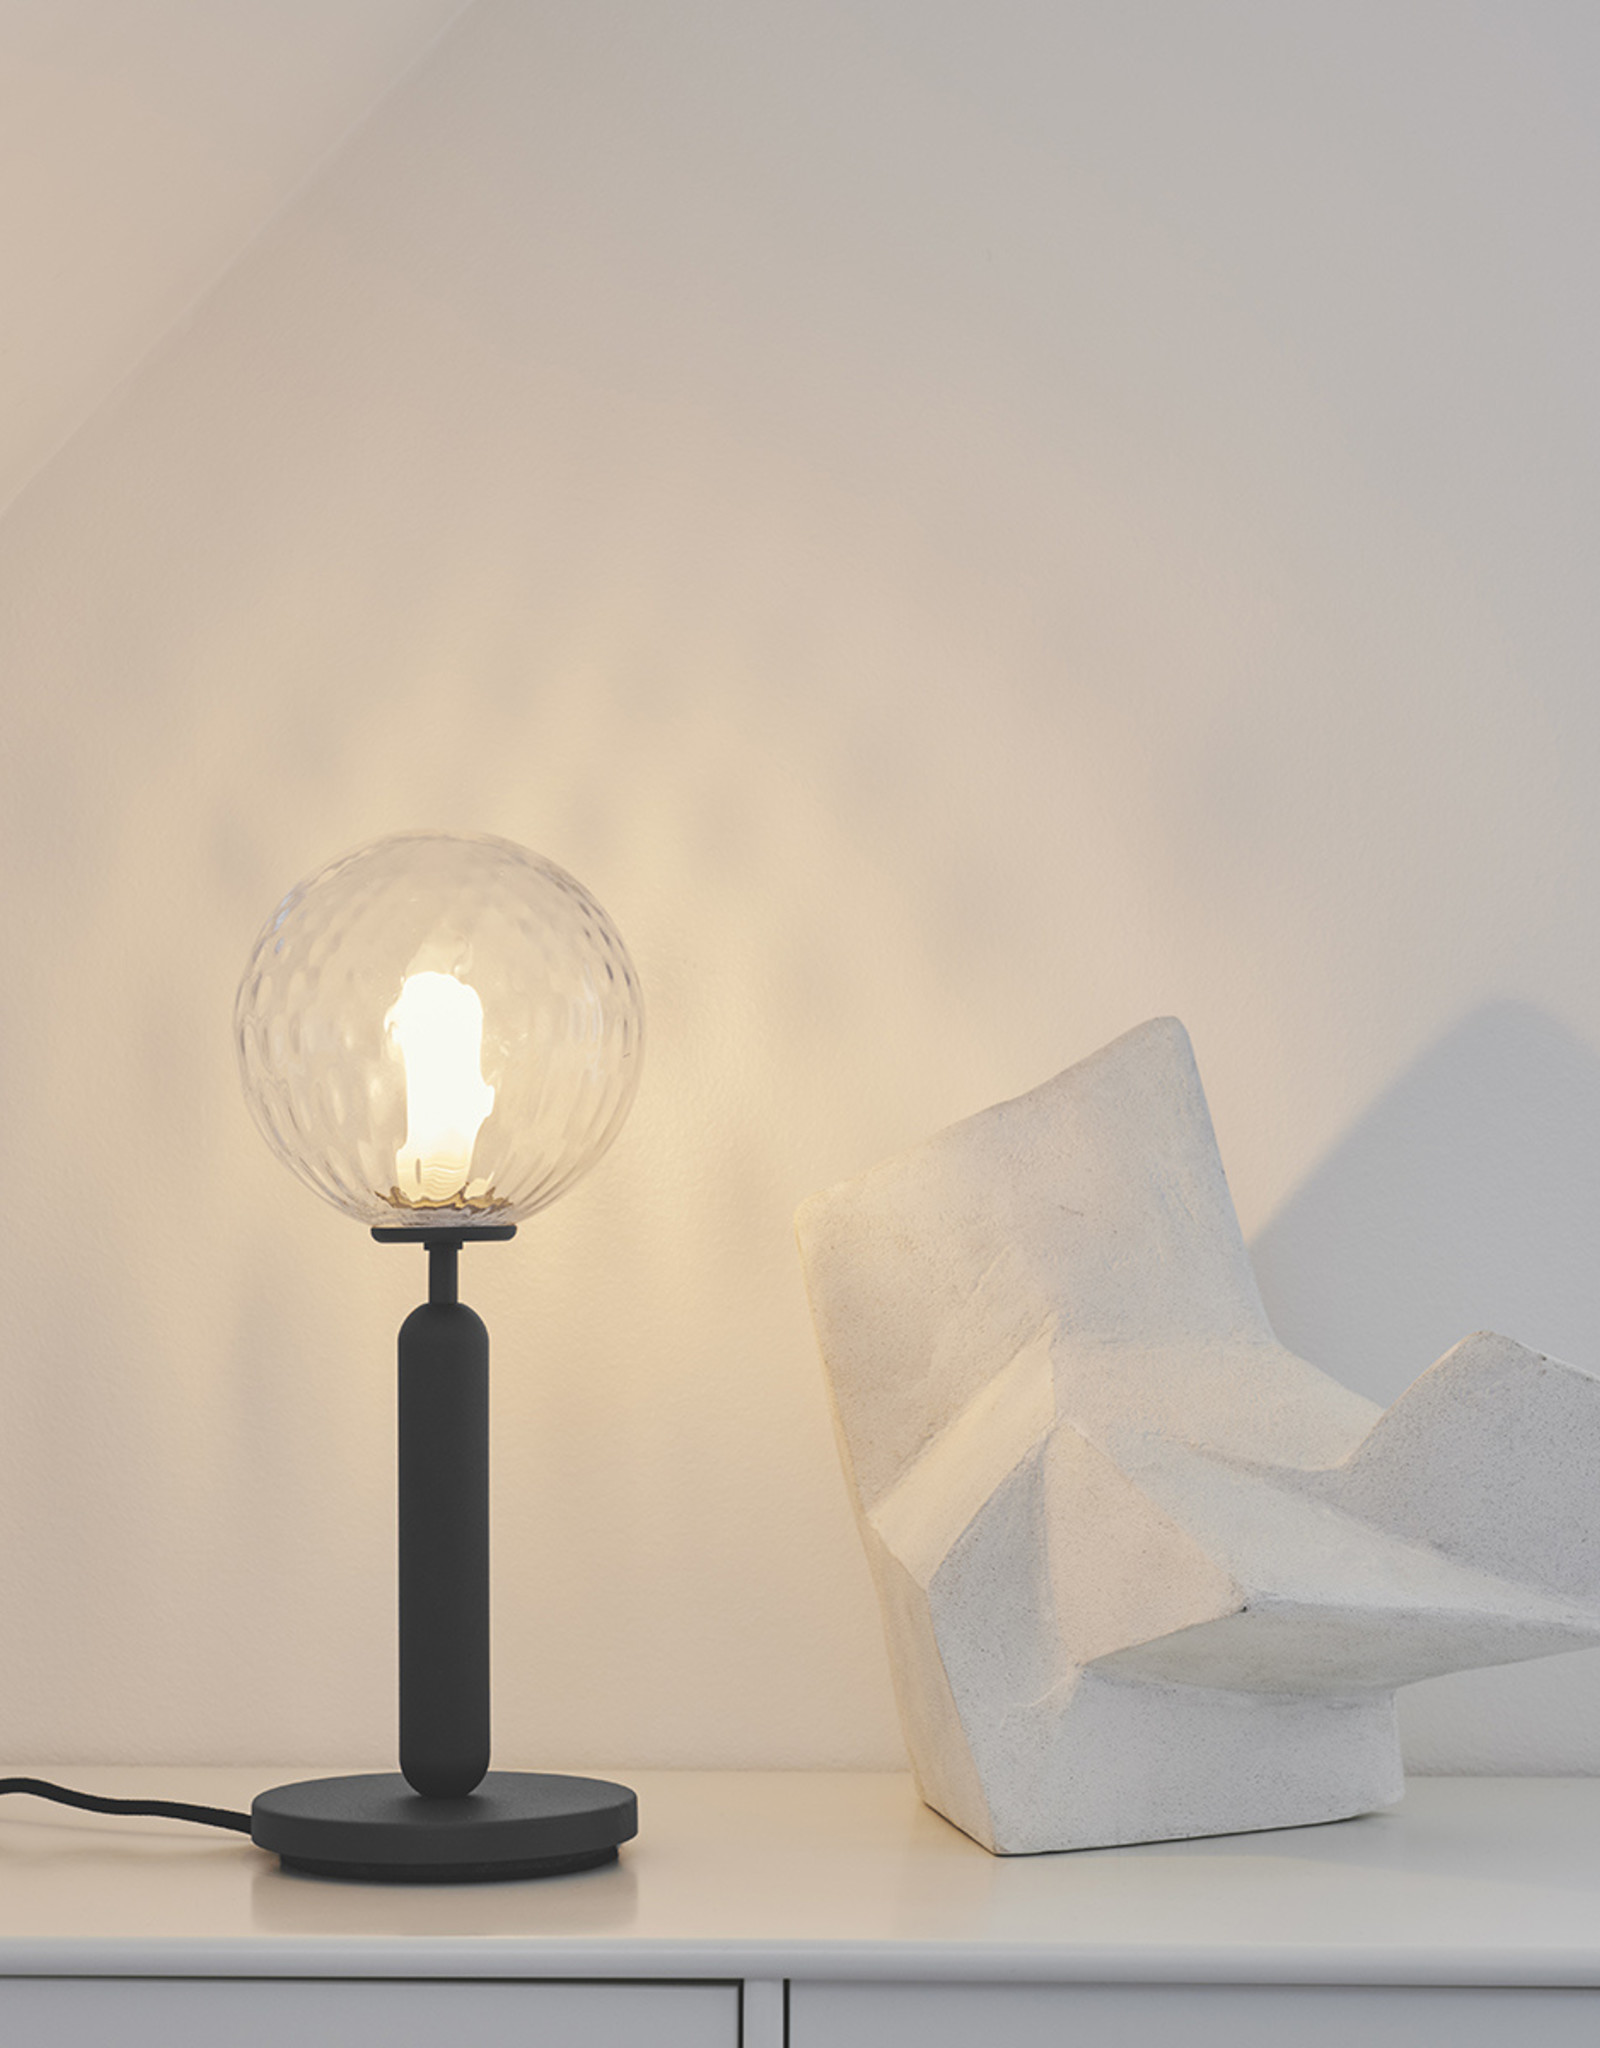 Nuura Miira table light by Sofie Refer   Rock grey/optic clear